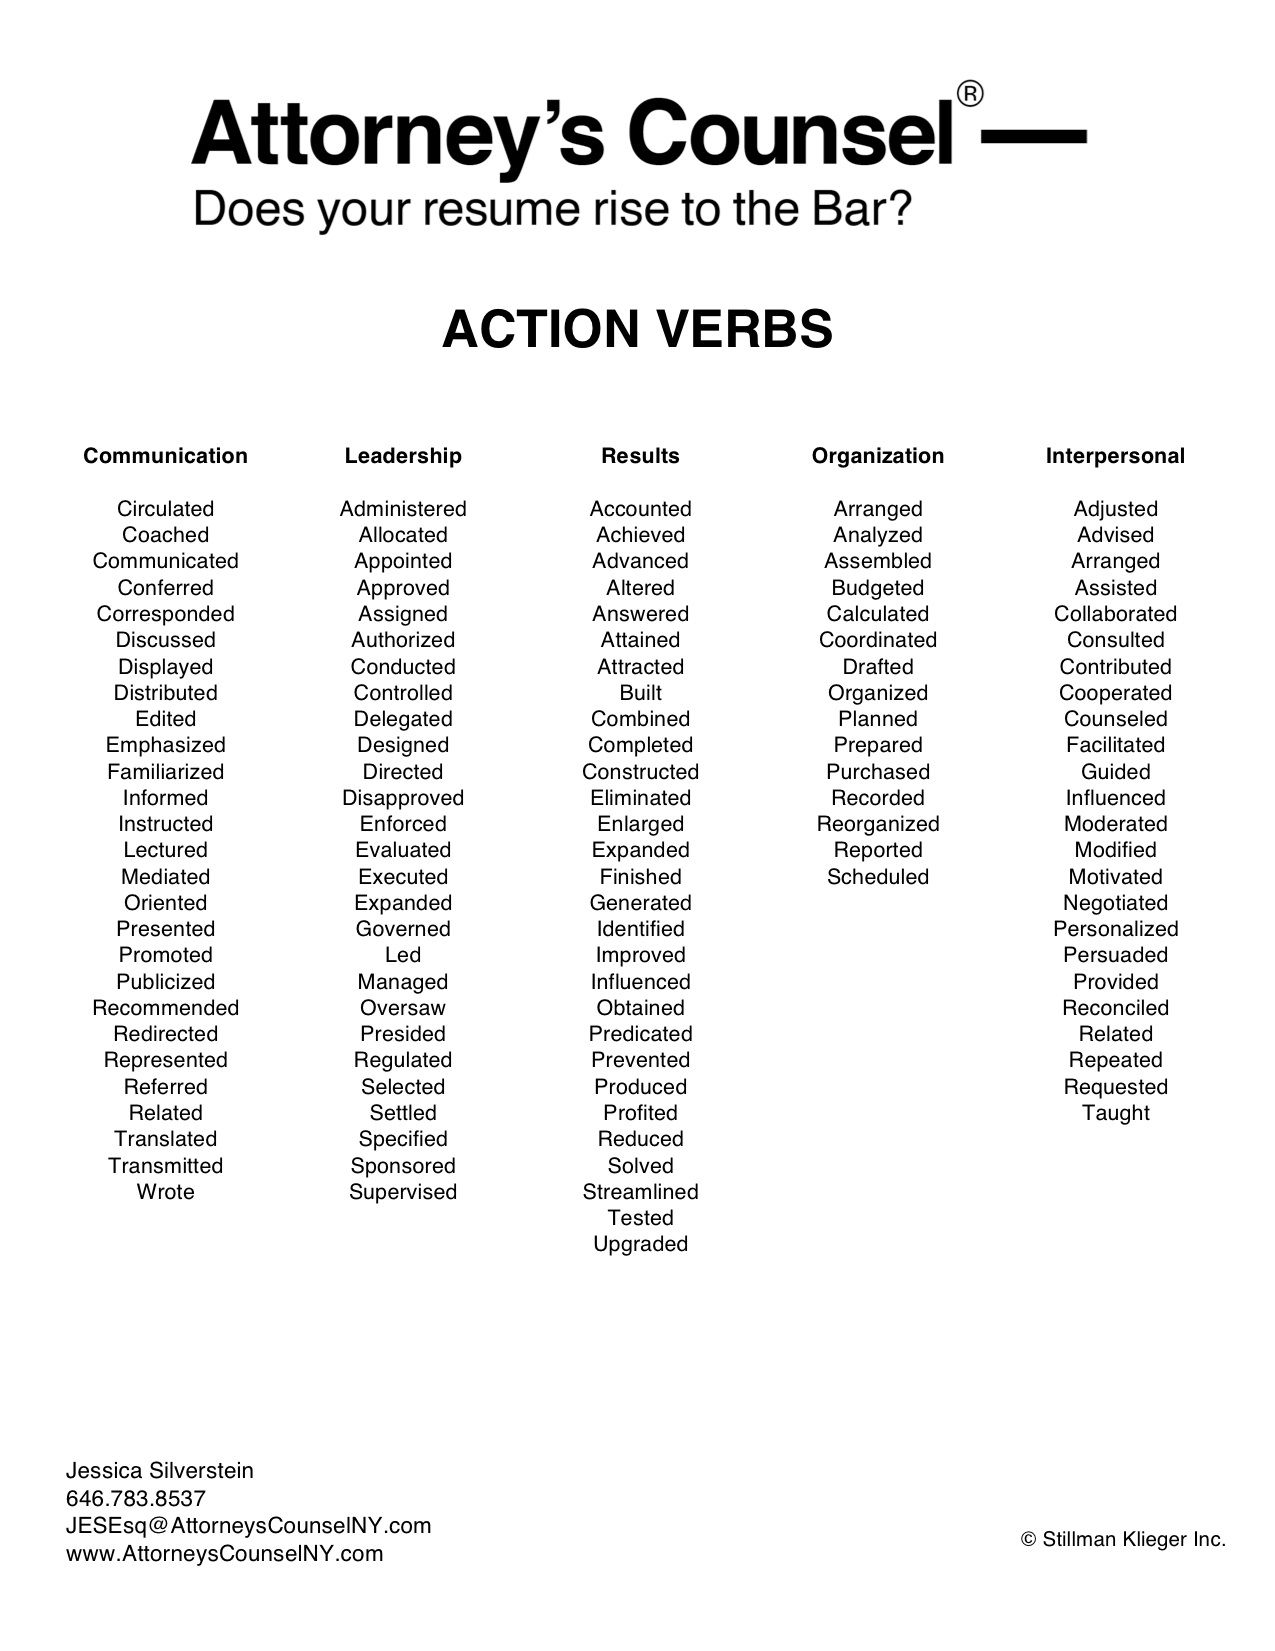 Just A Few Action Verbs To Use On Your Legal Resume.  Words To Use In Your Resume